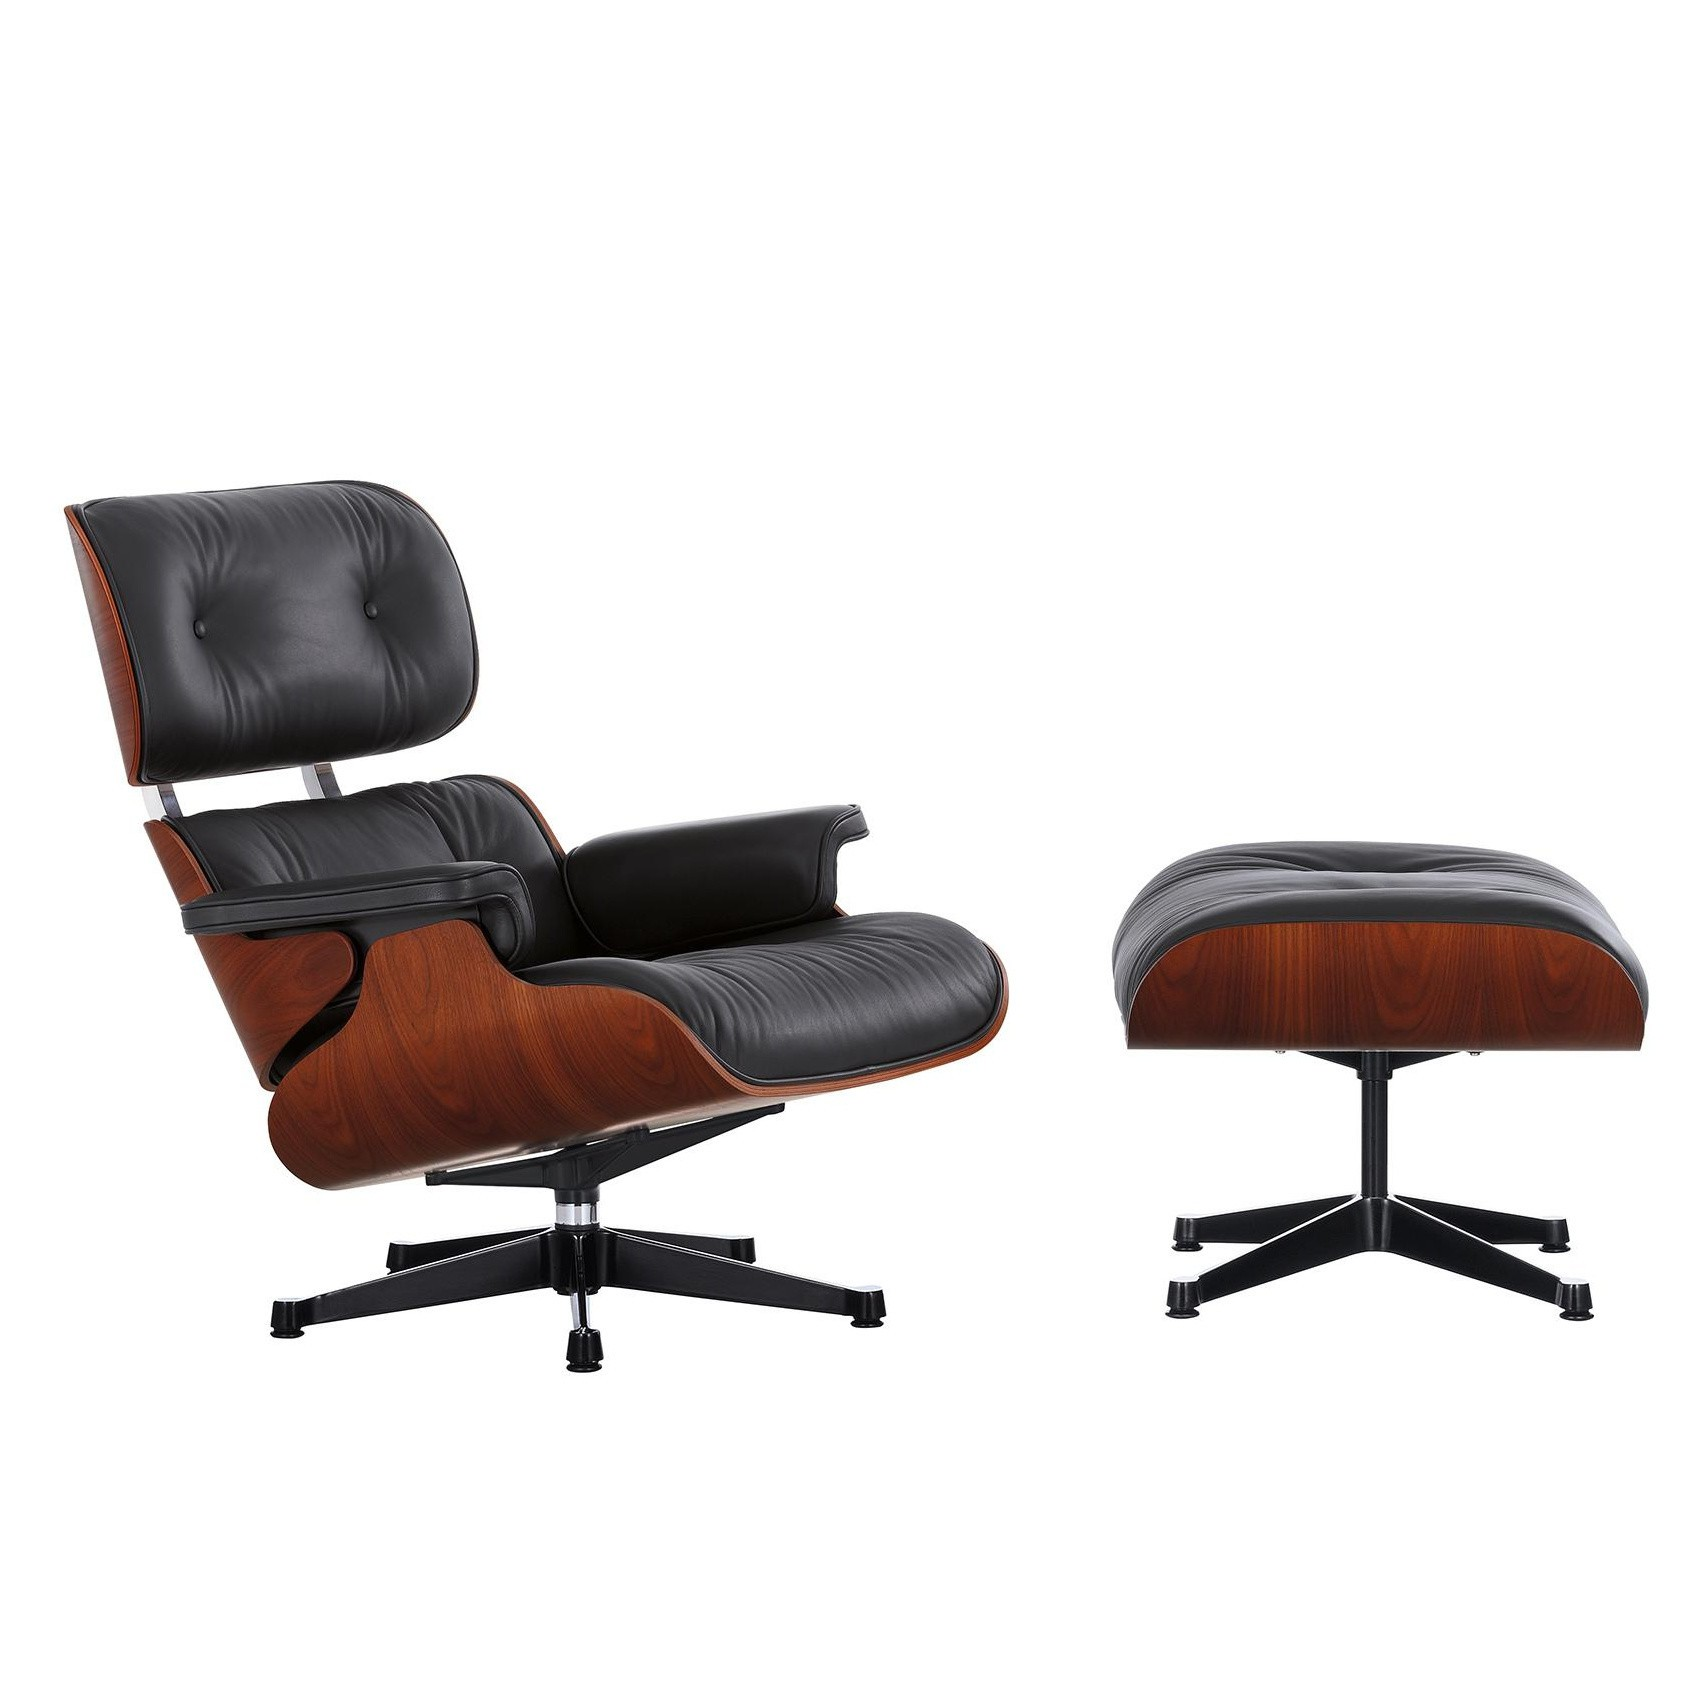 Vitra Eames Lounge Chair Eames Lounge Chair Set Ltr For Free